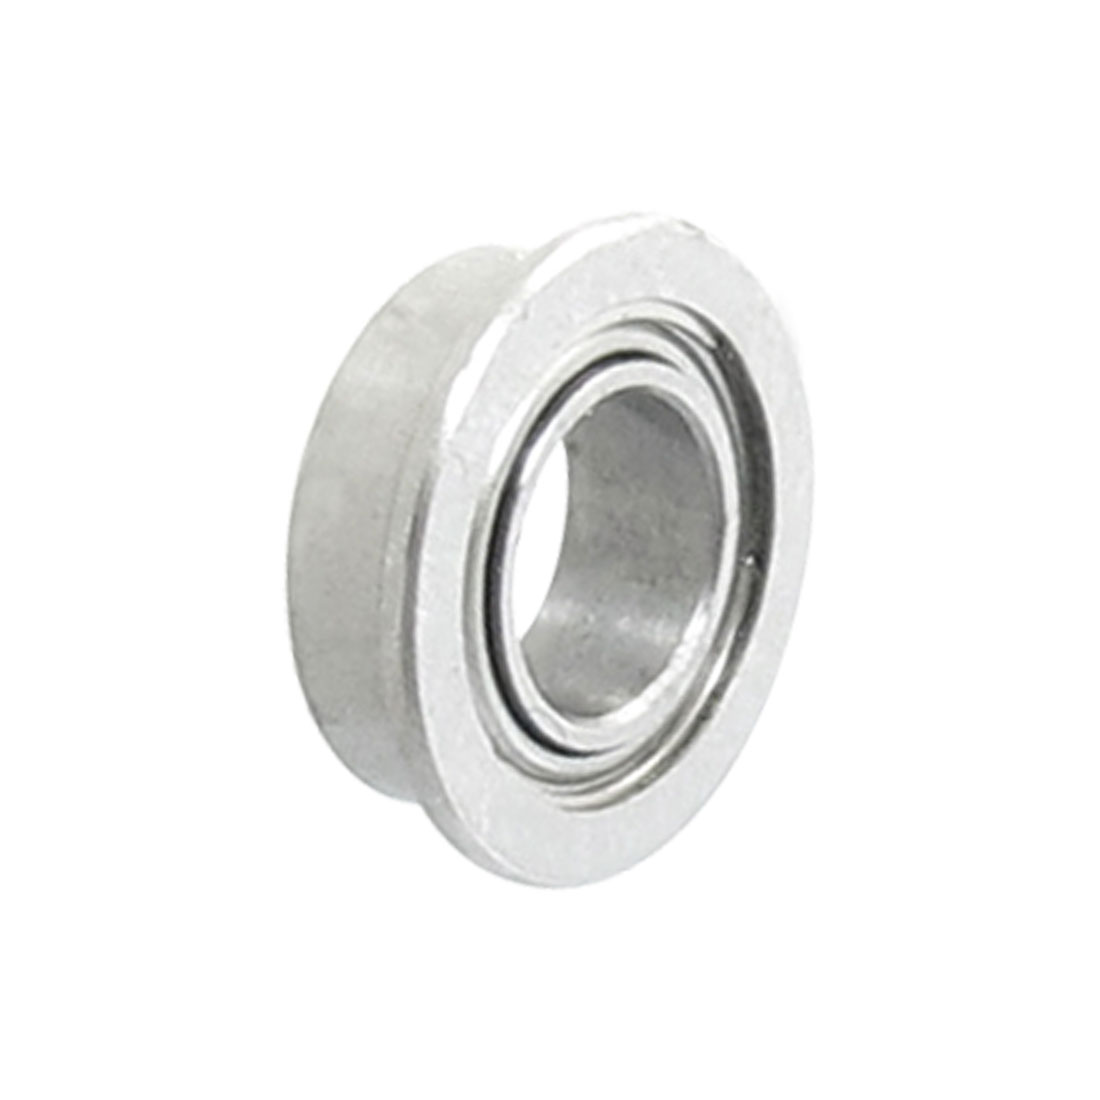 Metal-7mm-x-4mm-x-2-5mm-Radial-Shield-Flanged-Deep-Groove-Ball-Bearing